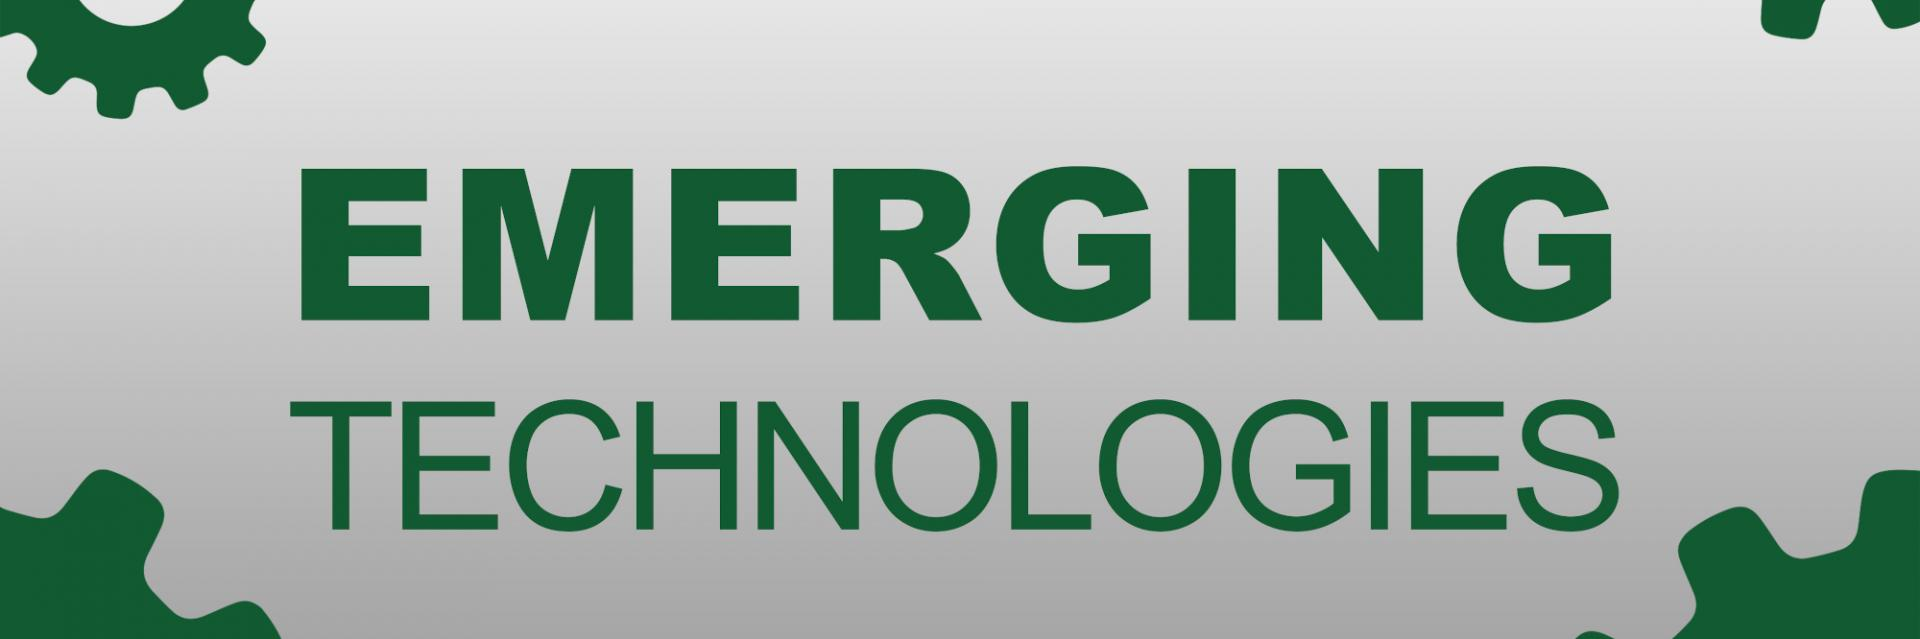 COM2021: Emerging technologies remain key in promoting economic growth